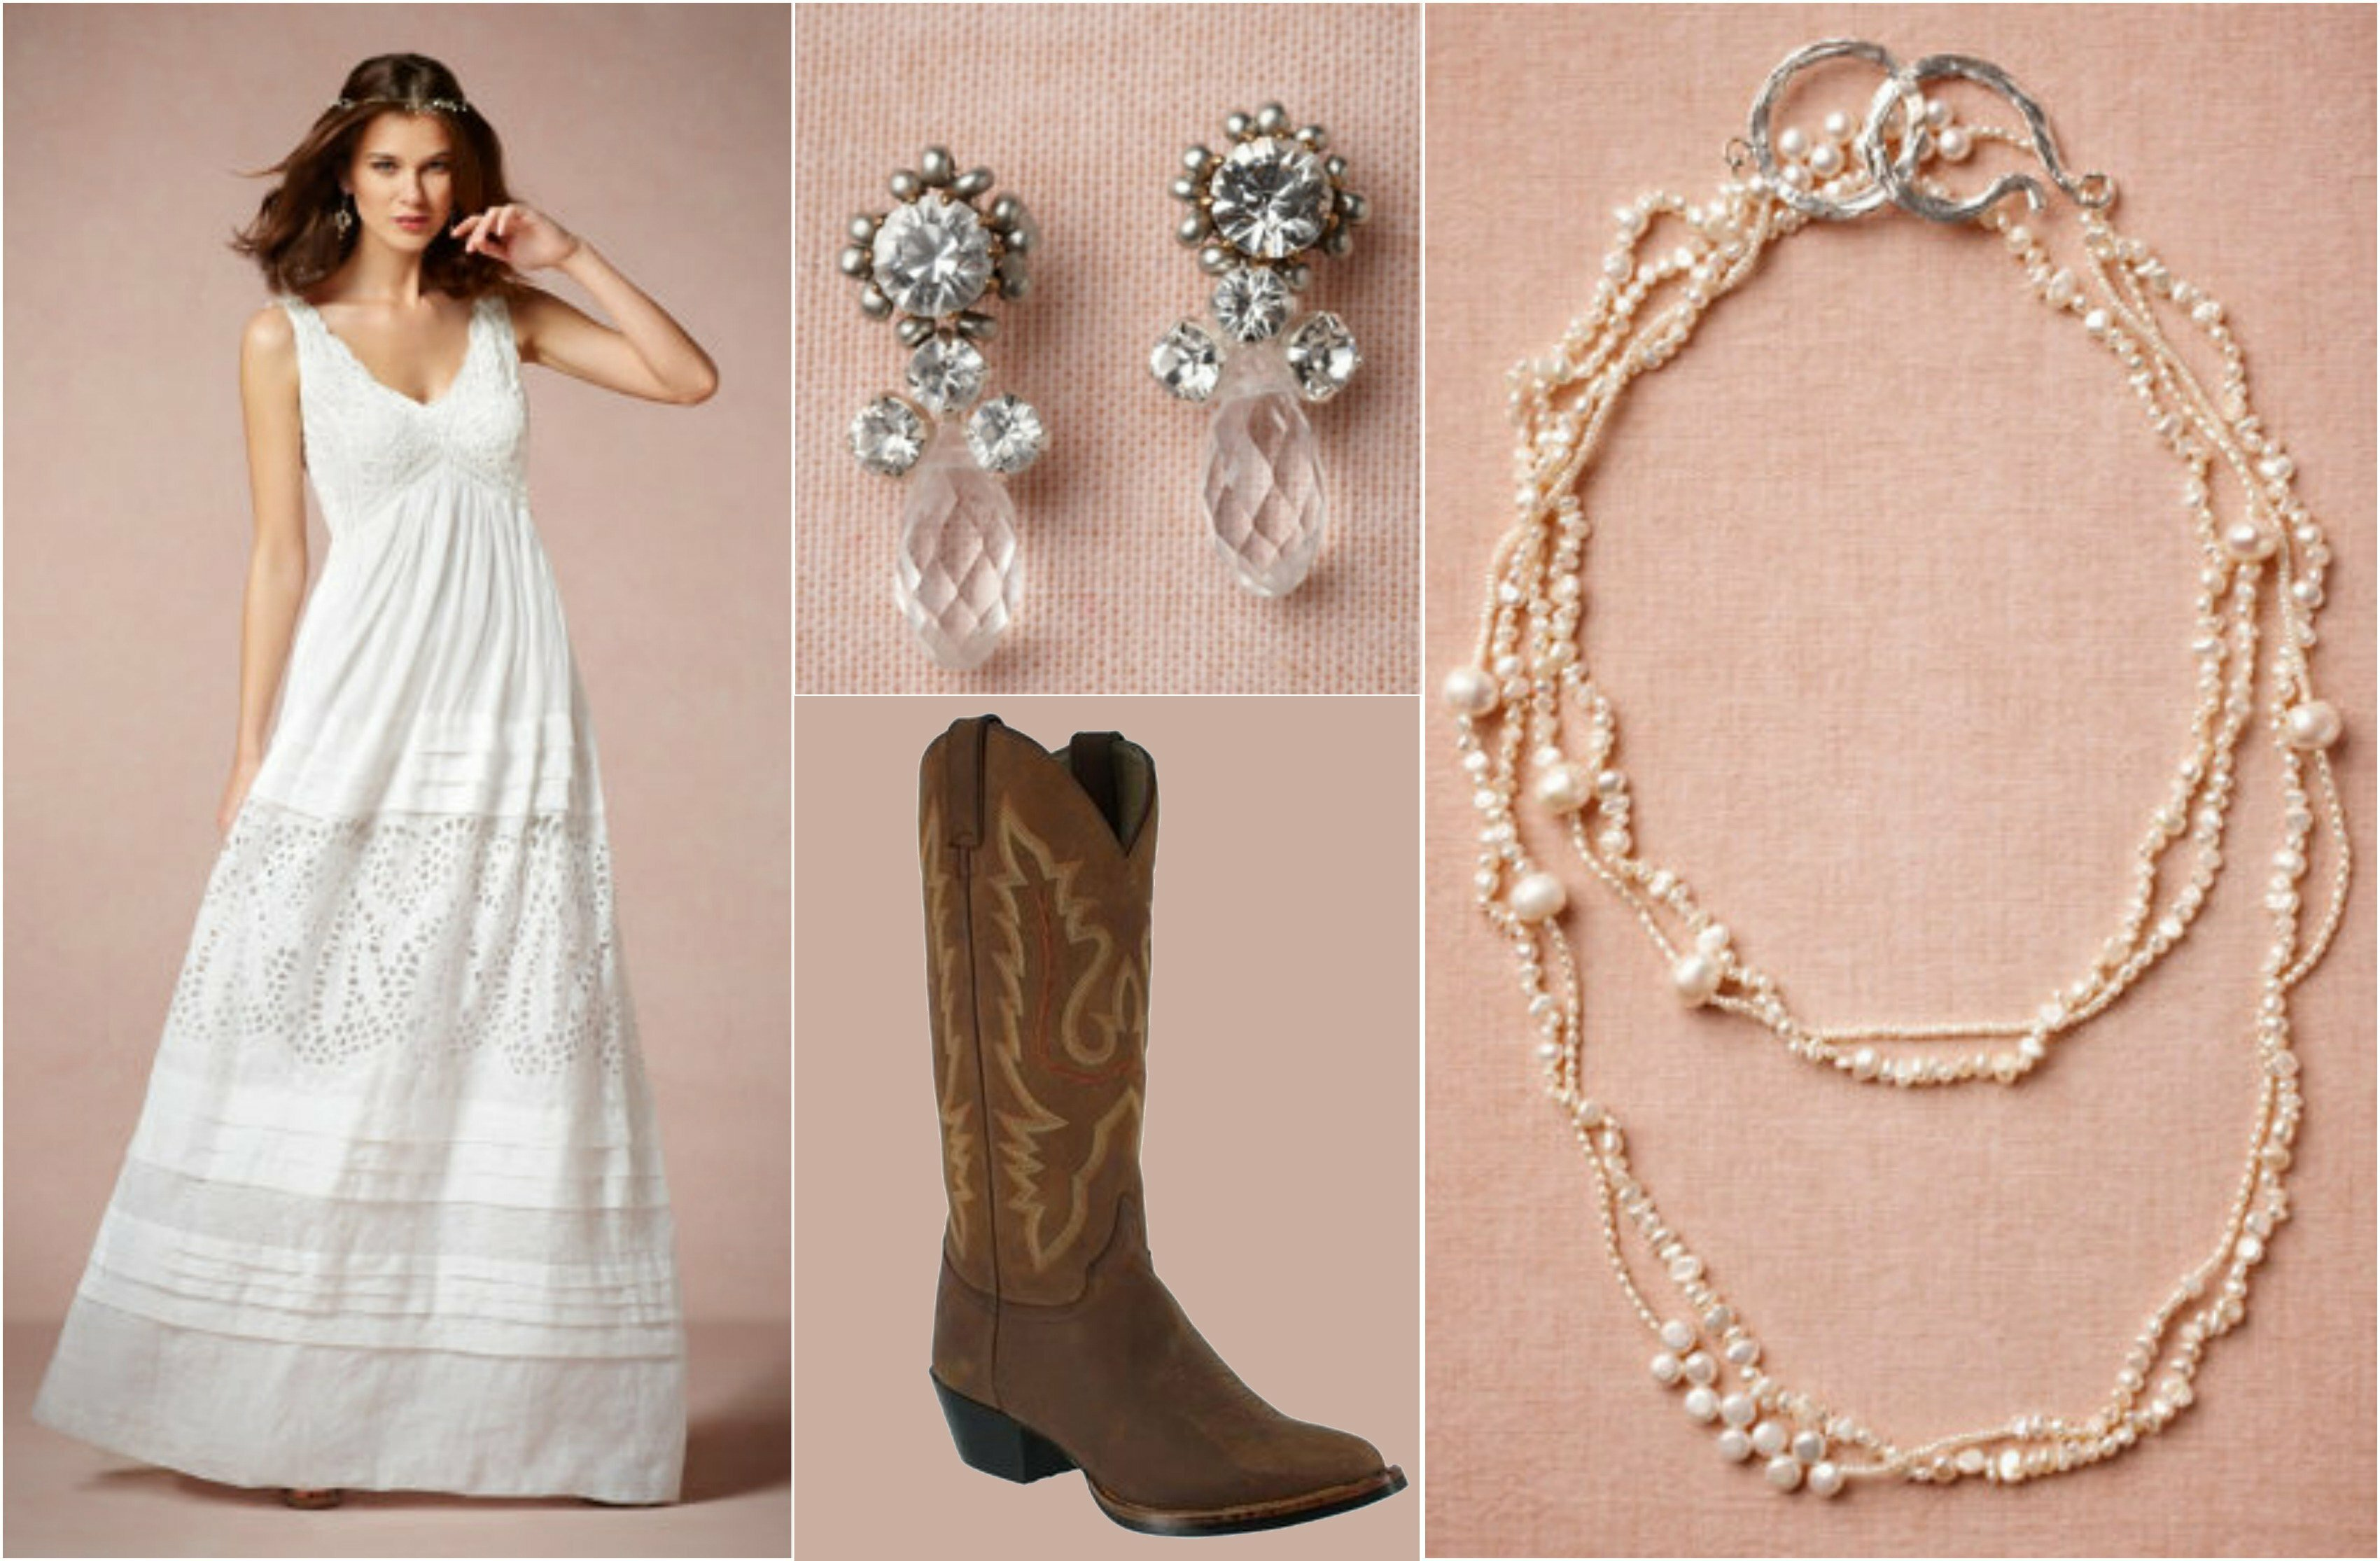 Western wedding dresses with boots: Pictures ideas, Guide to buying ...